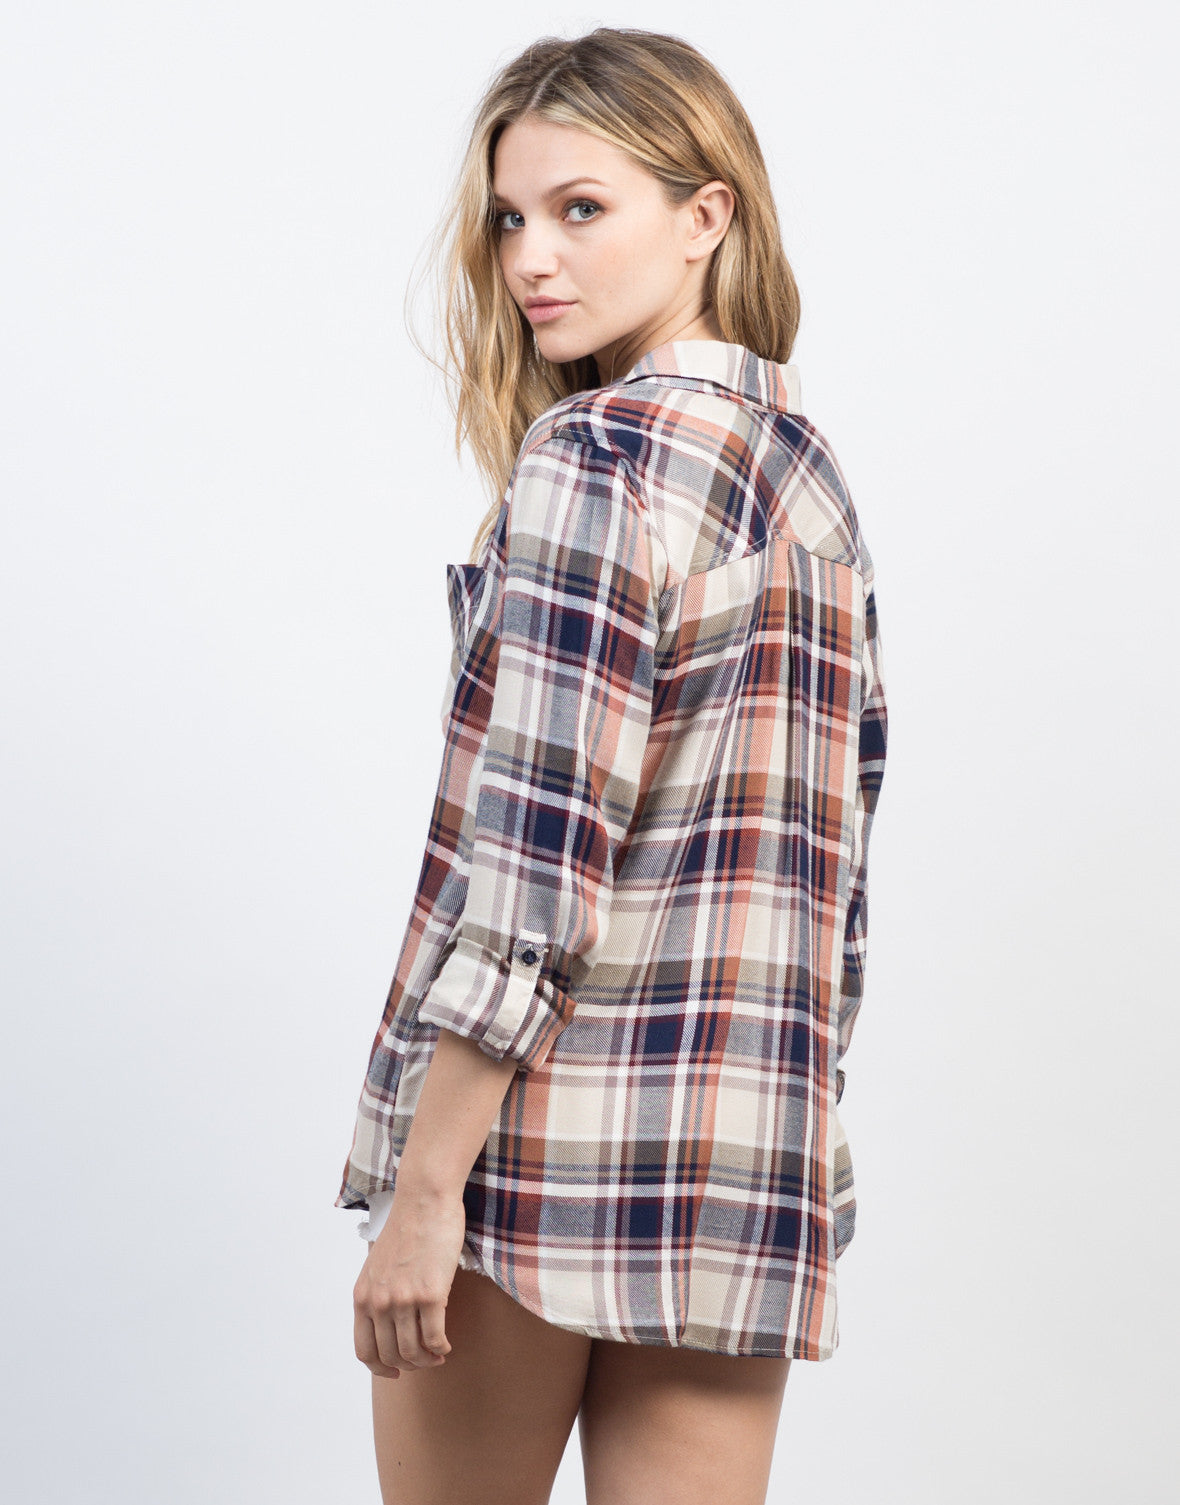 Back View of Multi Colored Plaid Shirt